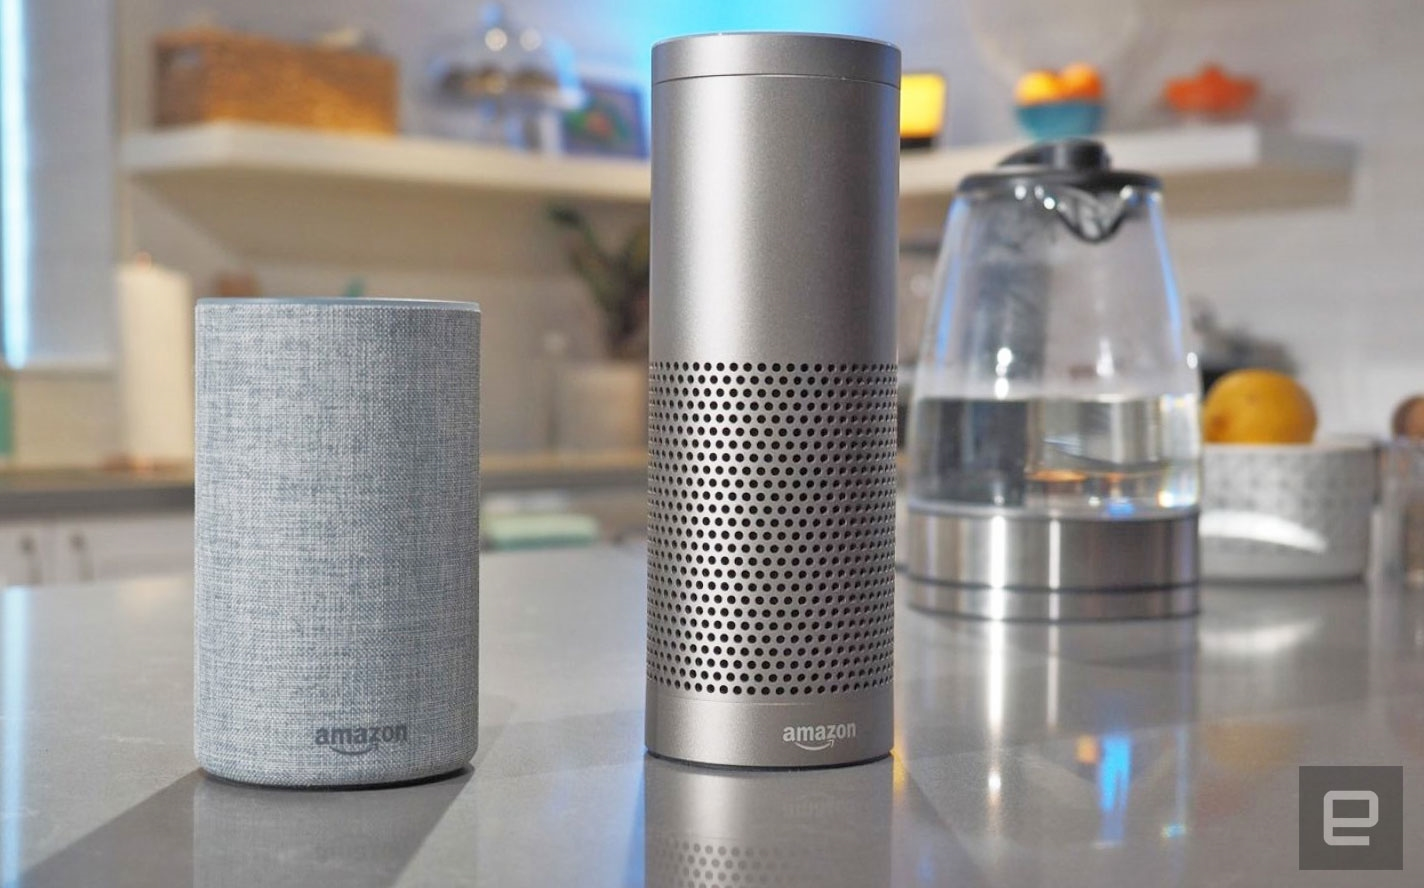 Alexa now tells you when it can answer old questions | DeviceDaily.com